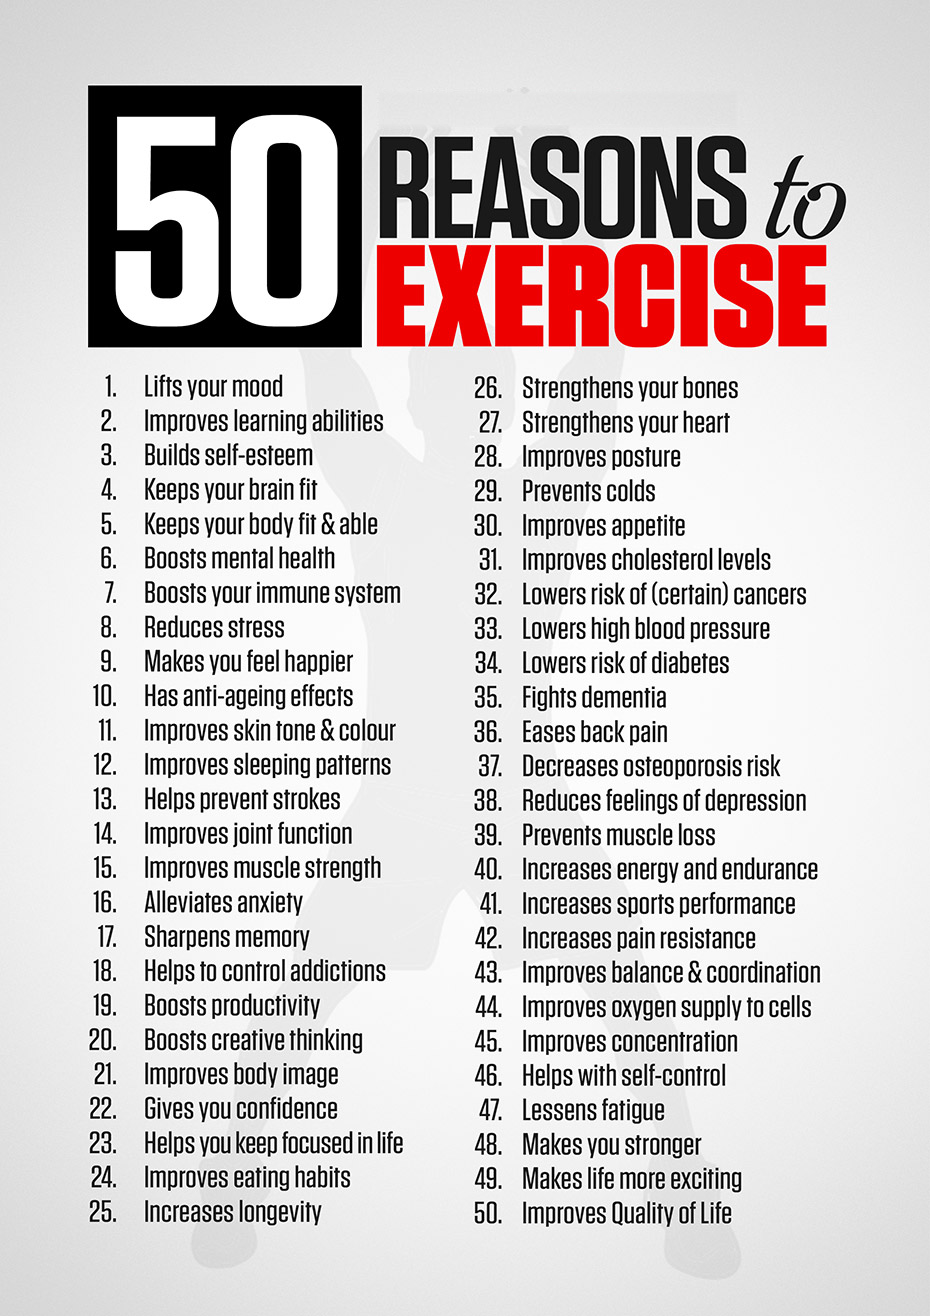 50 reasons to exercise tactical fitness australia